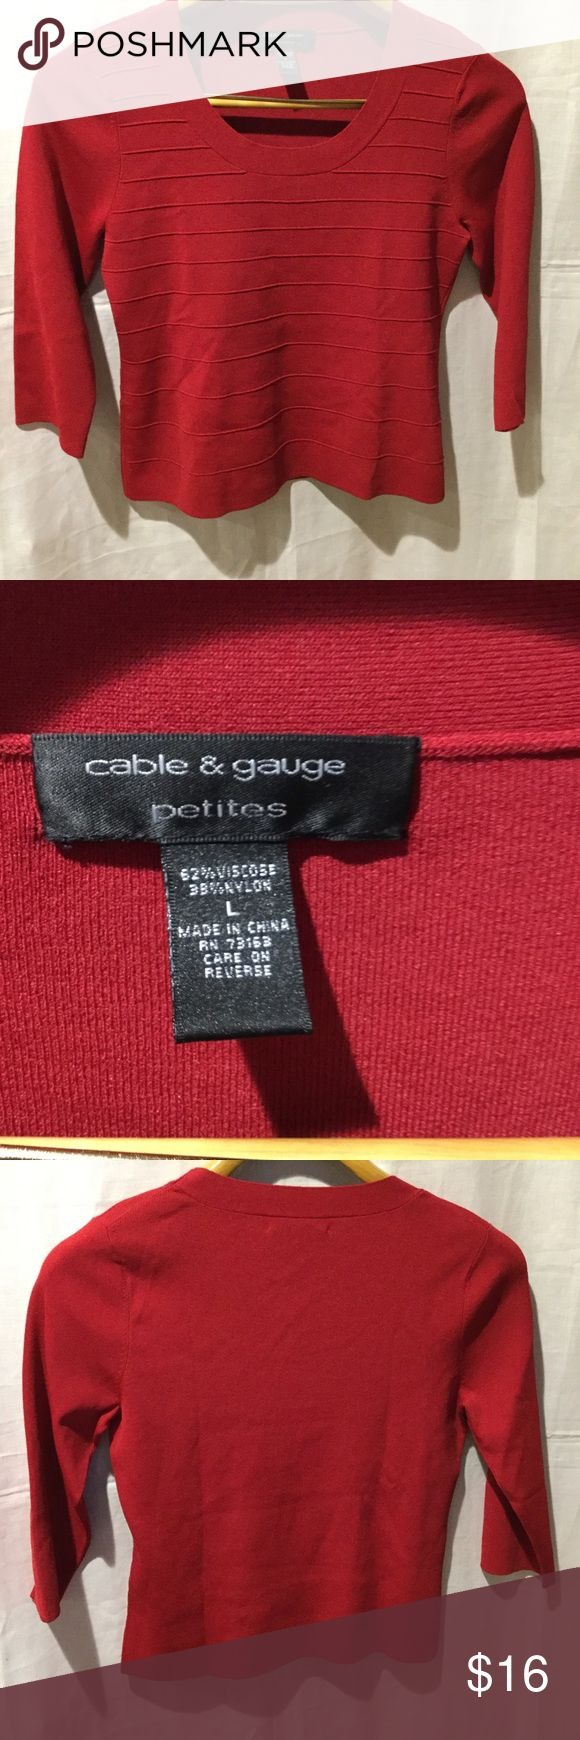 Cable & Gauge Petites Shirt Type:	Shirt Brand:	Cable & Gauge Size Type:	Petite Women's Size:Large  Season:	Spring - Summer, Fall - Winter Colors:Red                                                         This item have been worn but has no visible signs of wear in Excellent Condition. Cable & Gauge Petites Tops Tees - Long Sleeve